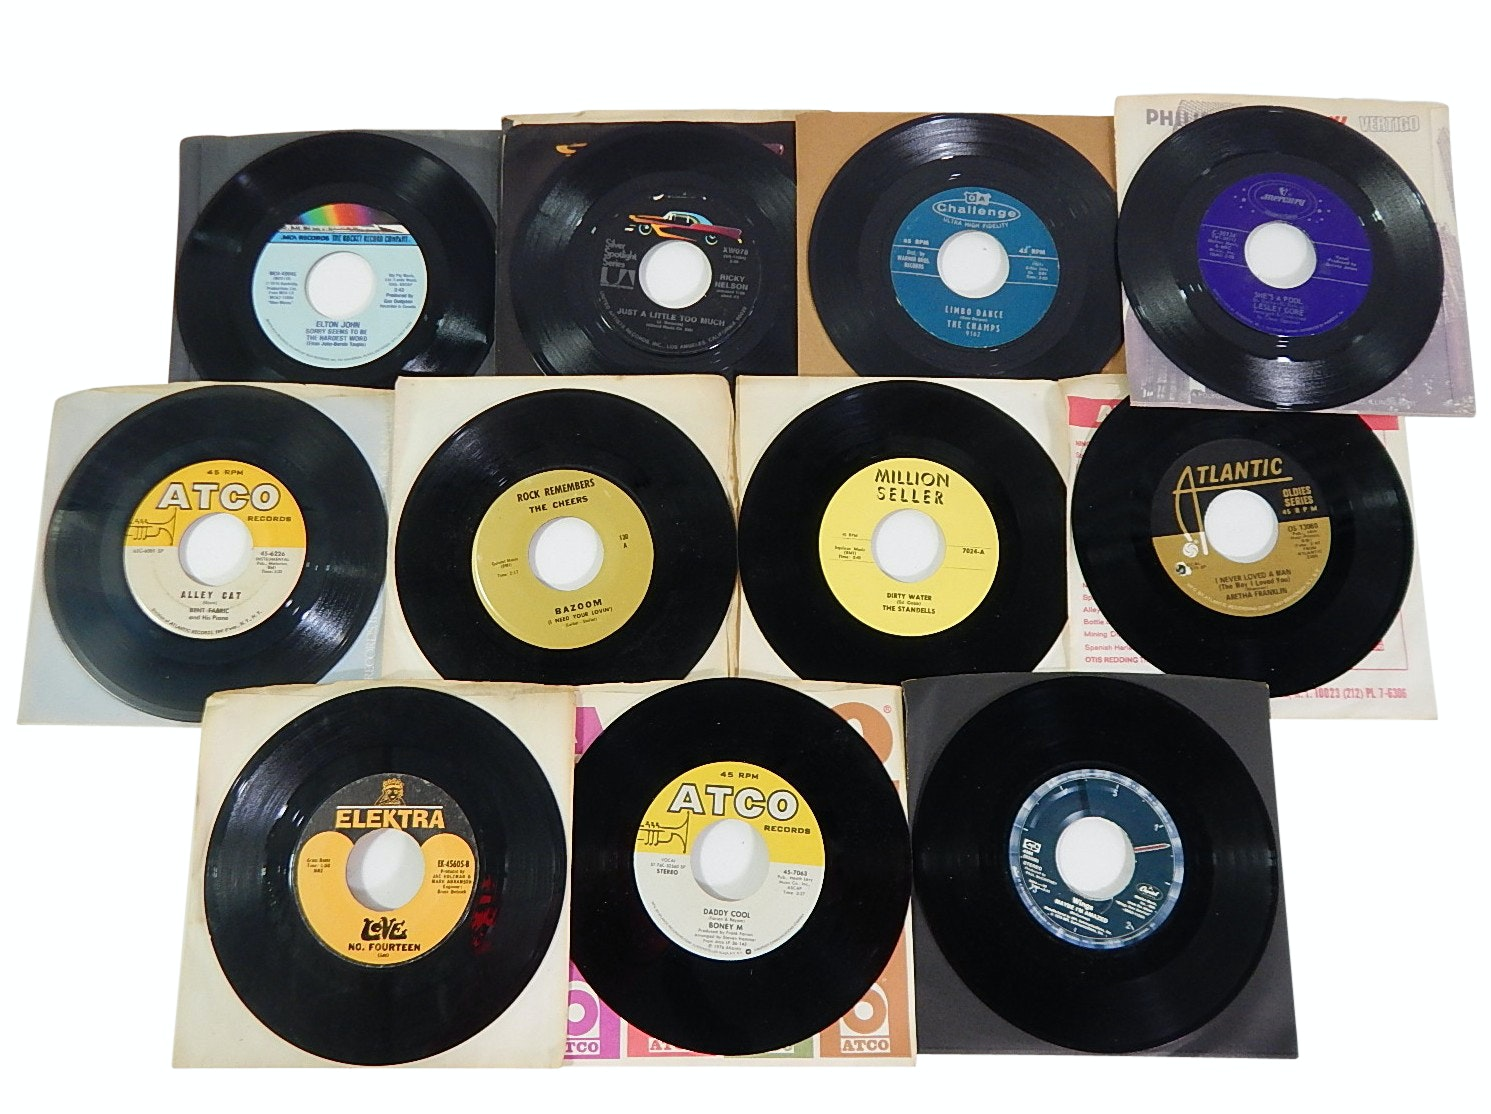 1960s/1970s 45 RPM Record Albums with Country, Rock, Pop, and R&B